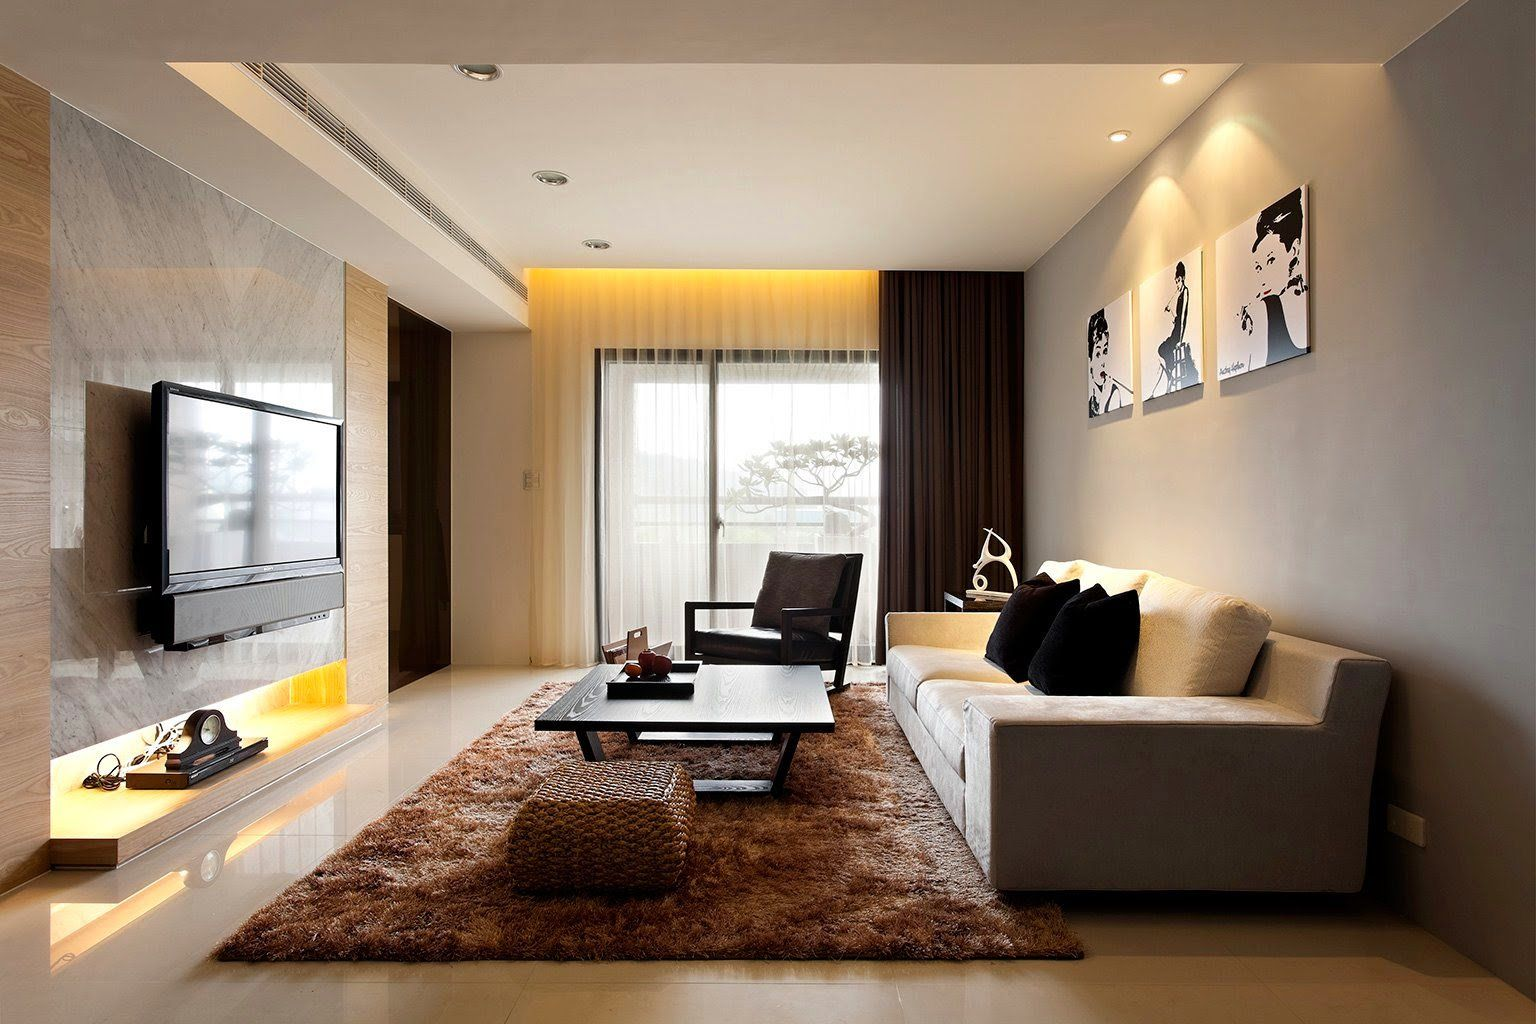 Home Design, Modern Living Room Decor Black Table Brown Fur Rug White Sofa  Tv Hand Chair Painting Grey Wall Tile Curtain Door Window Ceramic Floor And  Many ...